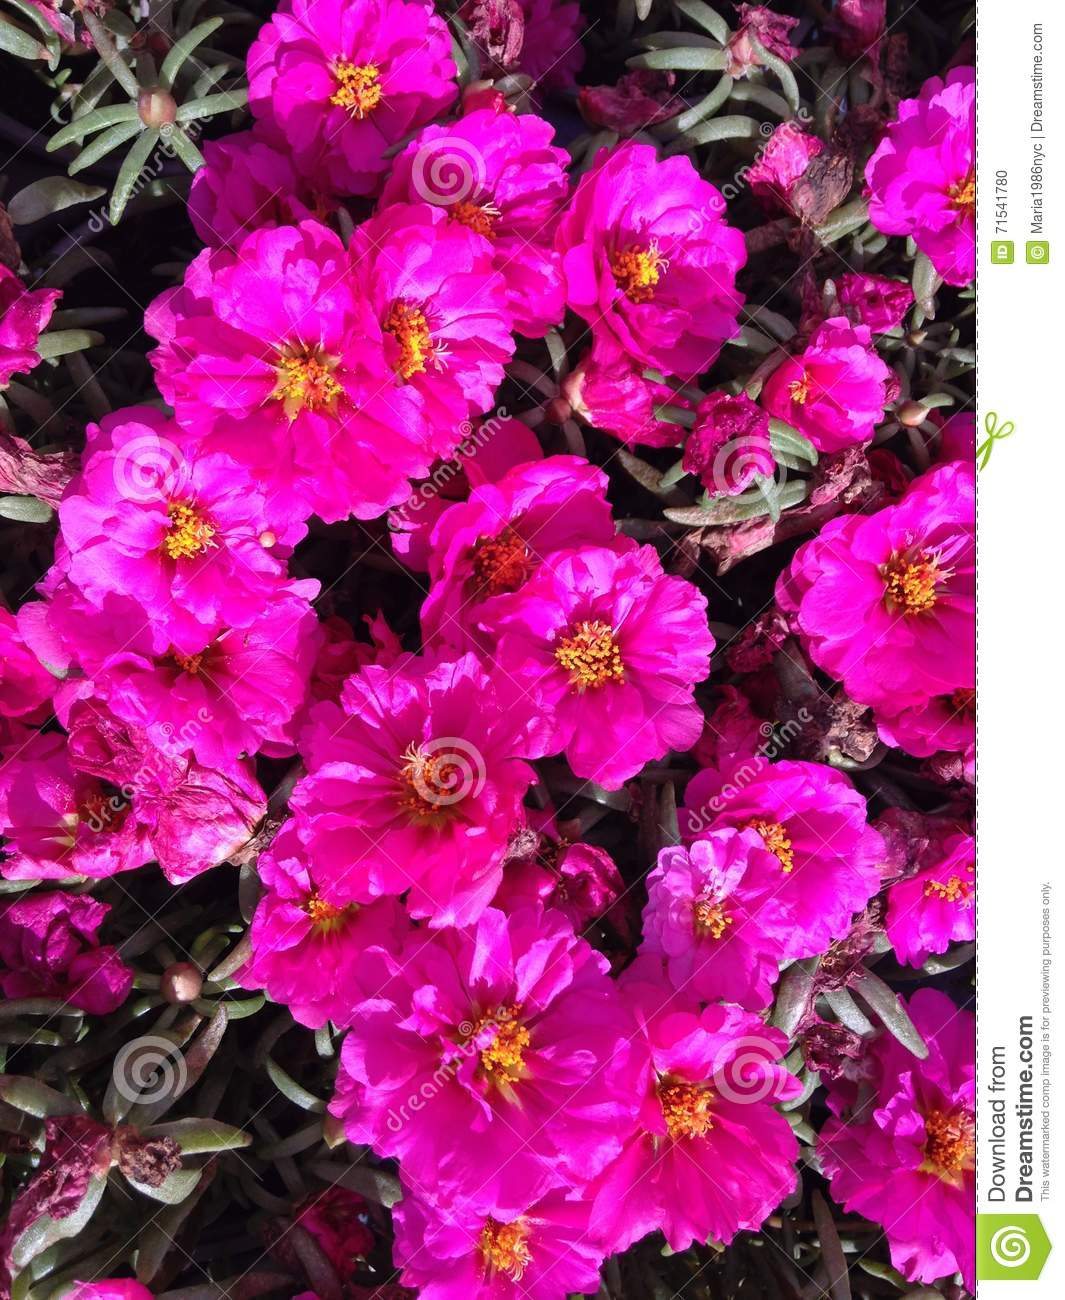 Portulaca Grandiflora Moss Rose Plant Blossoming With Pink Flowers